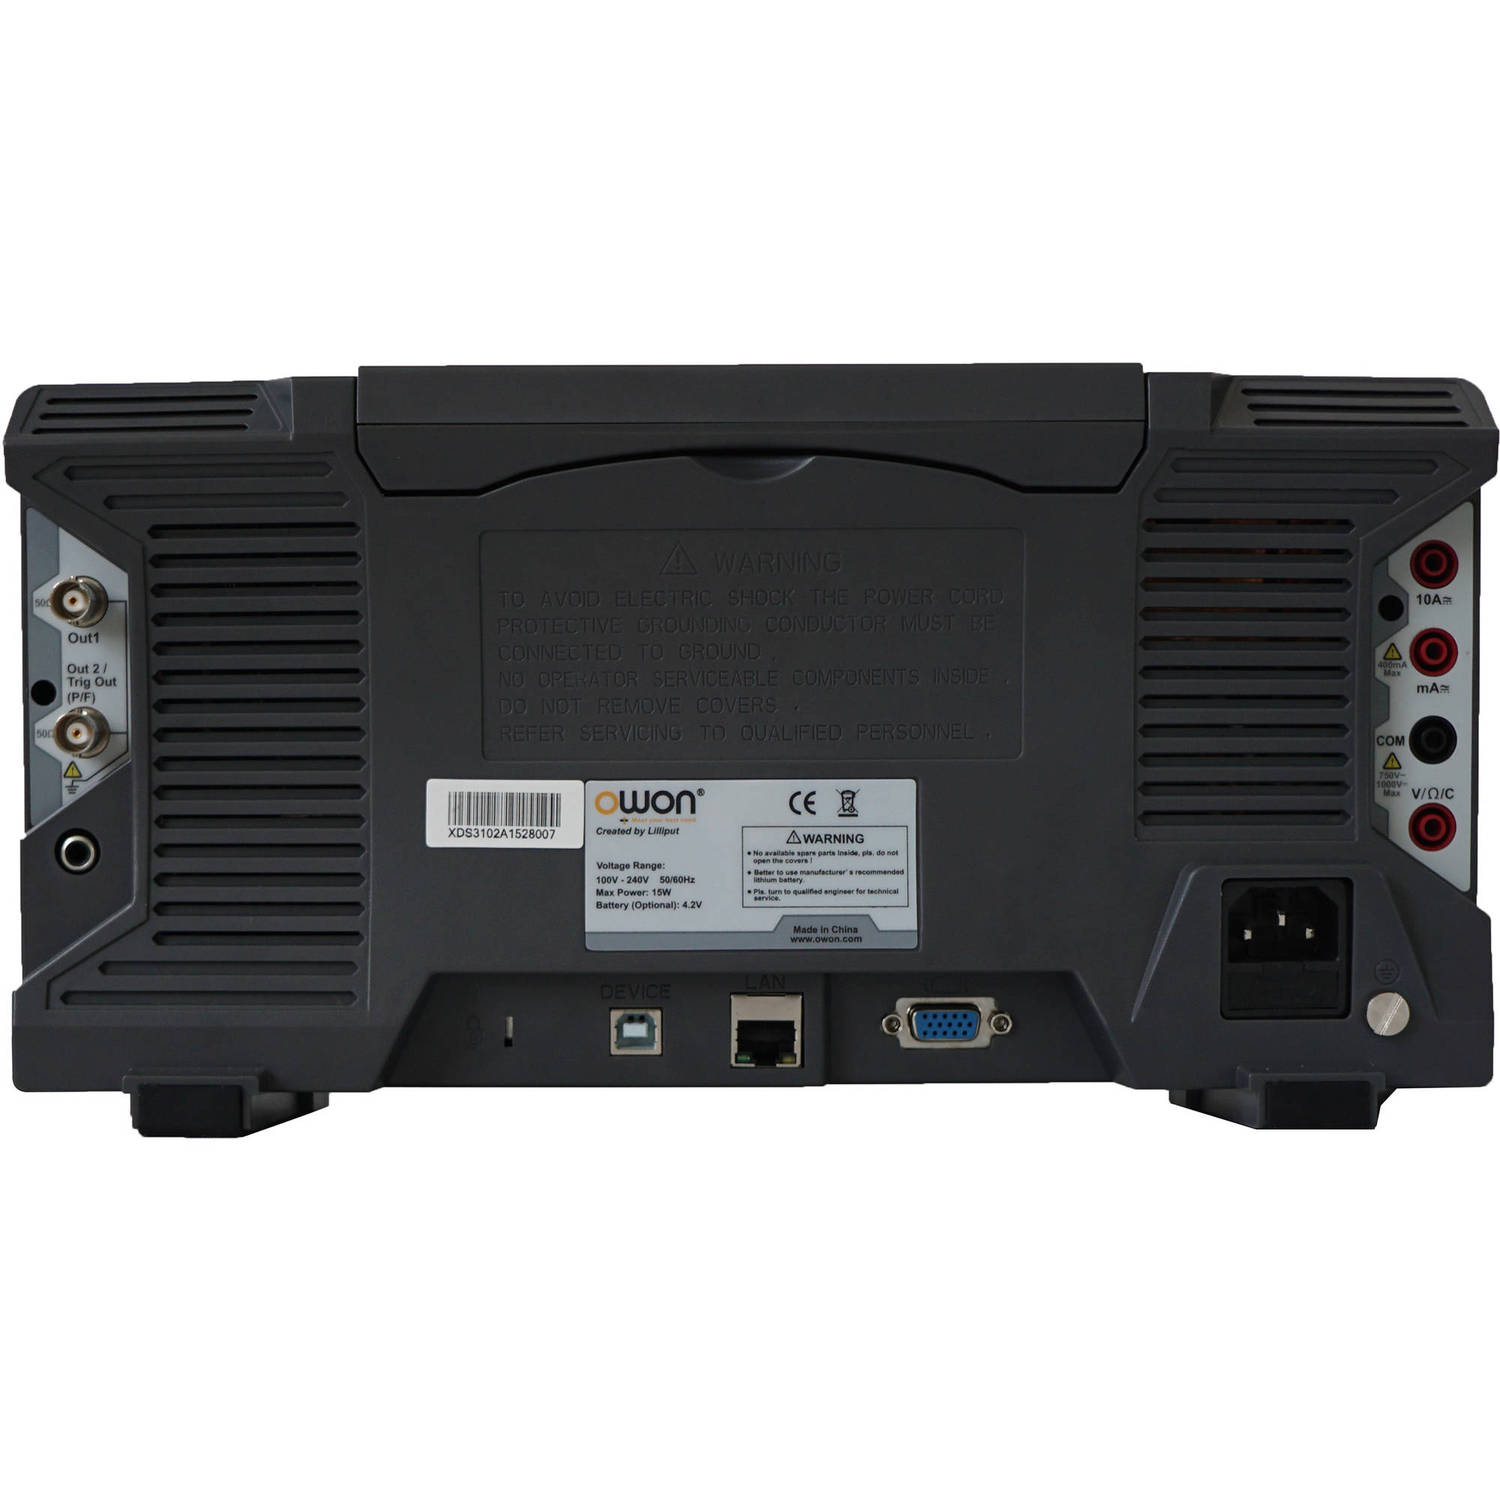 Audio Amplifier For An Mp3 Docking Station Eeweb Maxim Tech